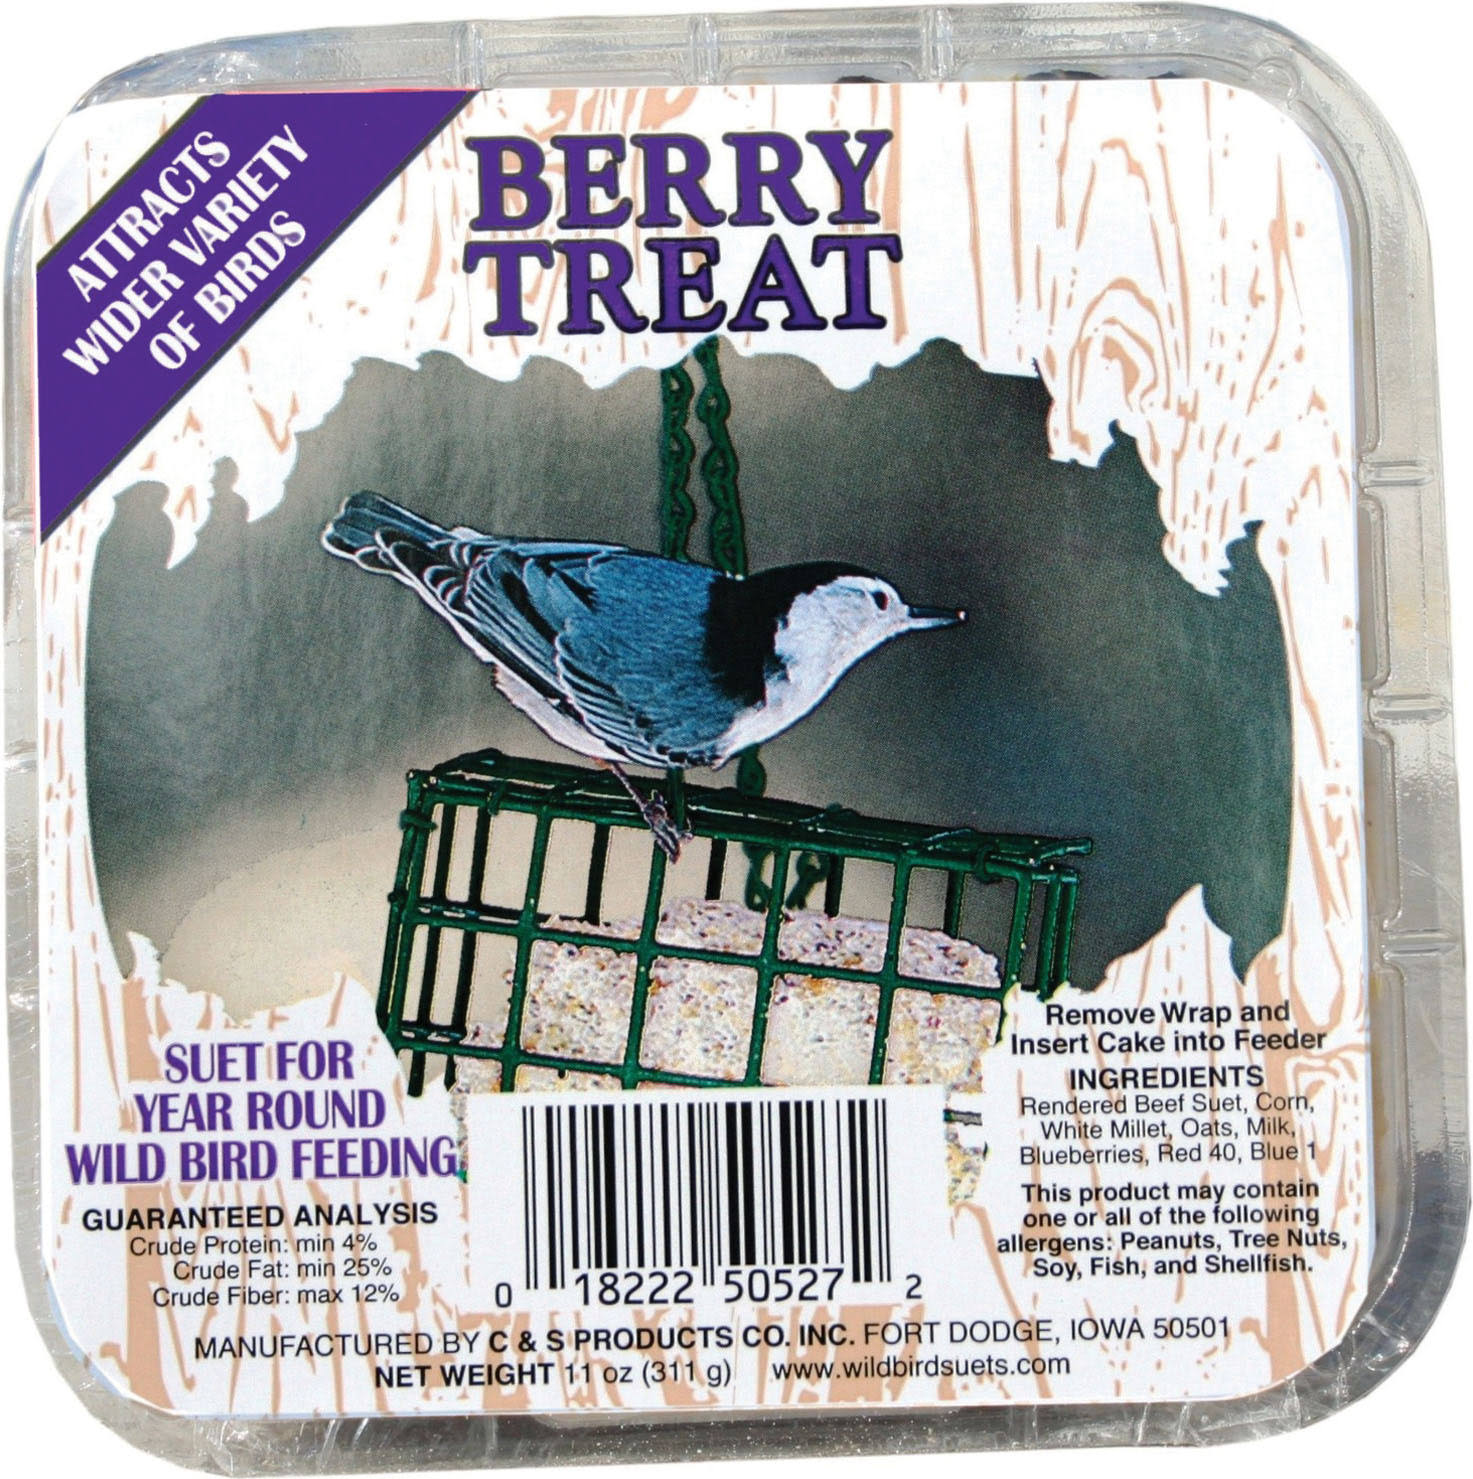 Berry Treat Wild Bird Suet